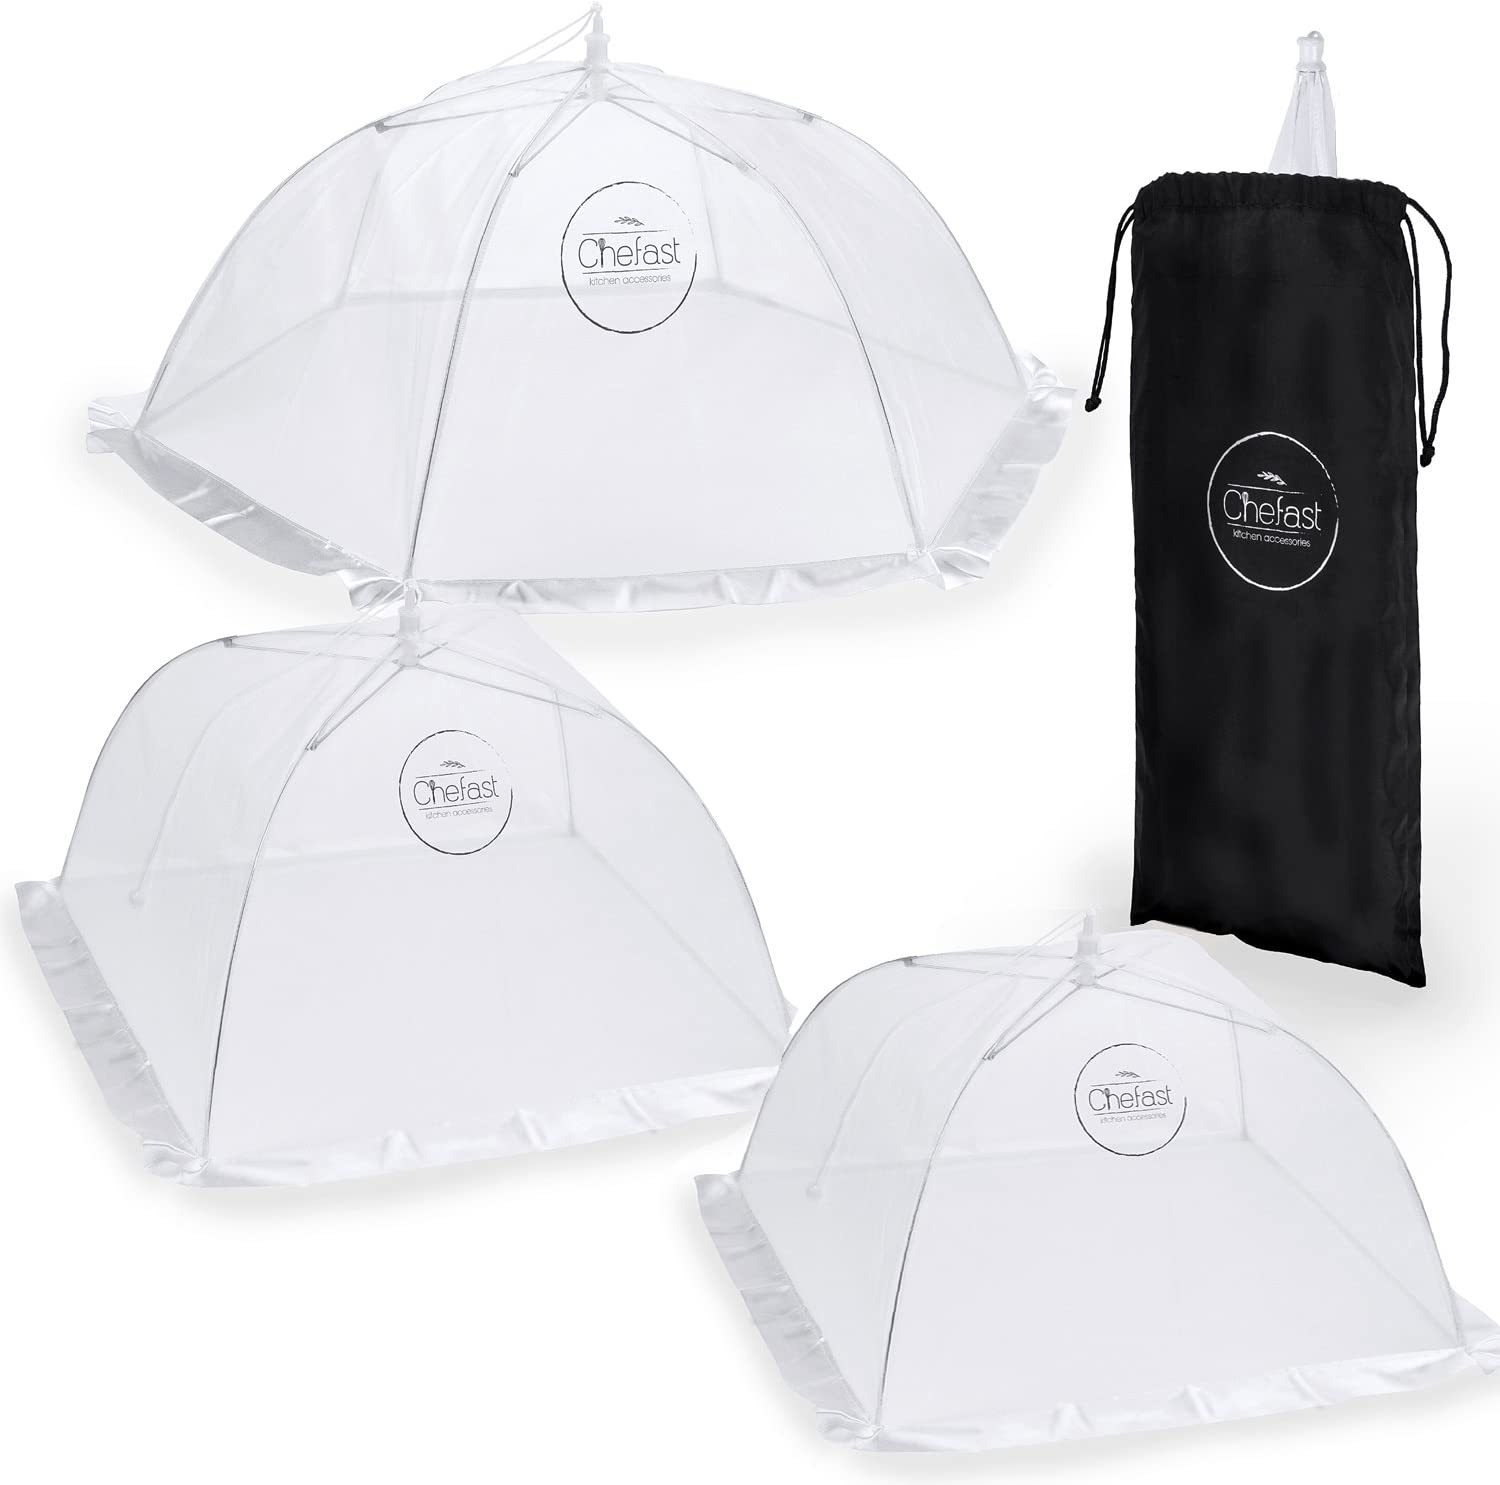 Chefast Food Cover Tents (4 Pack) - Combo Set of Pop Up Mesh Covers in 4 Sizes and a Reusable Carry Bag - Umbrella Screens for Picnics, BBQ, Outdoors and More